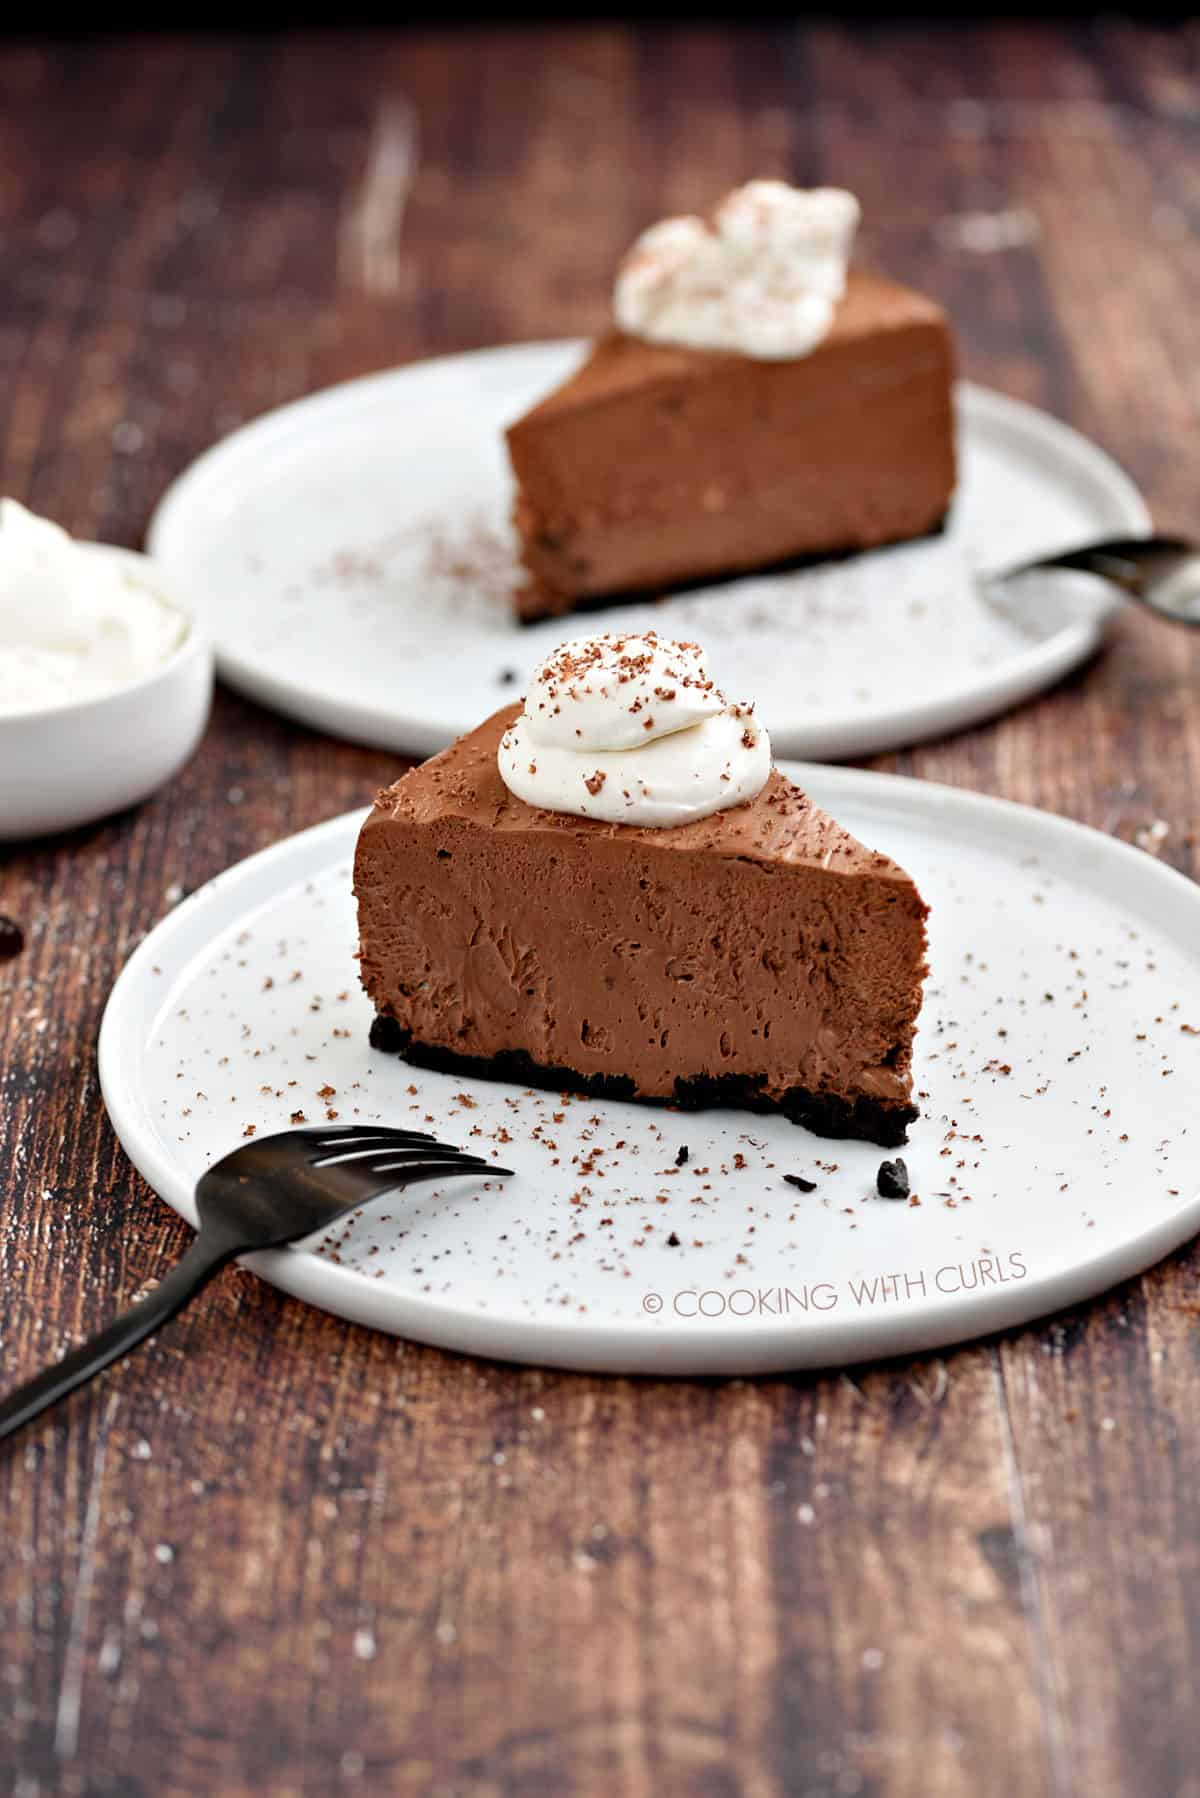 A slice of chocolate cheesecake topped with whipped cream and sprinkled with shaved chocolate sitting on a white plate with a second slice and a bowl of whipped cream in the background.